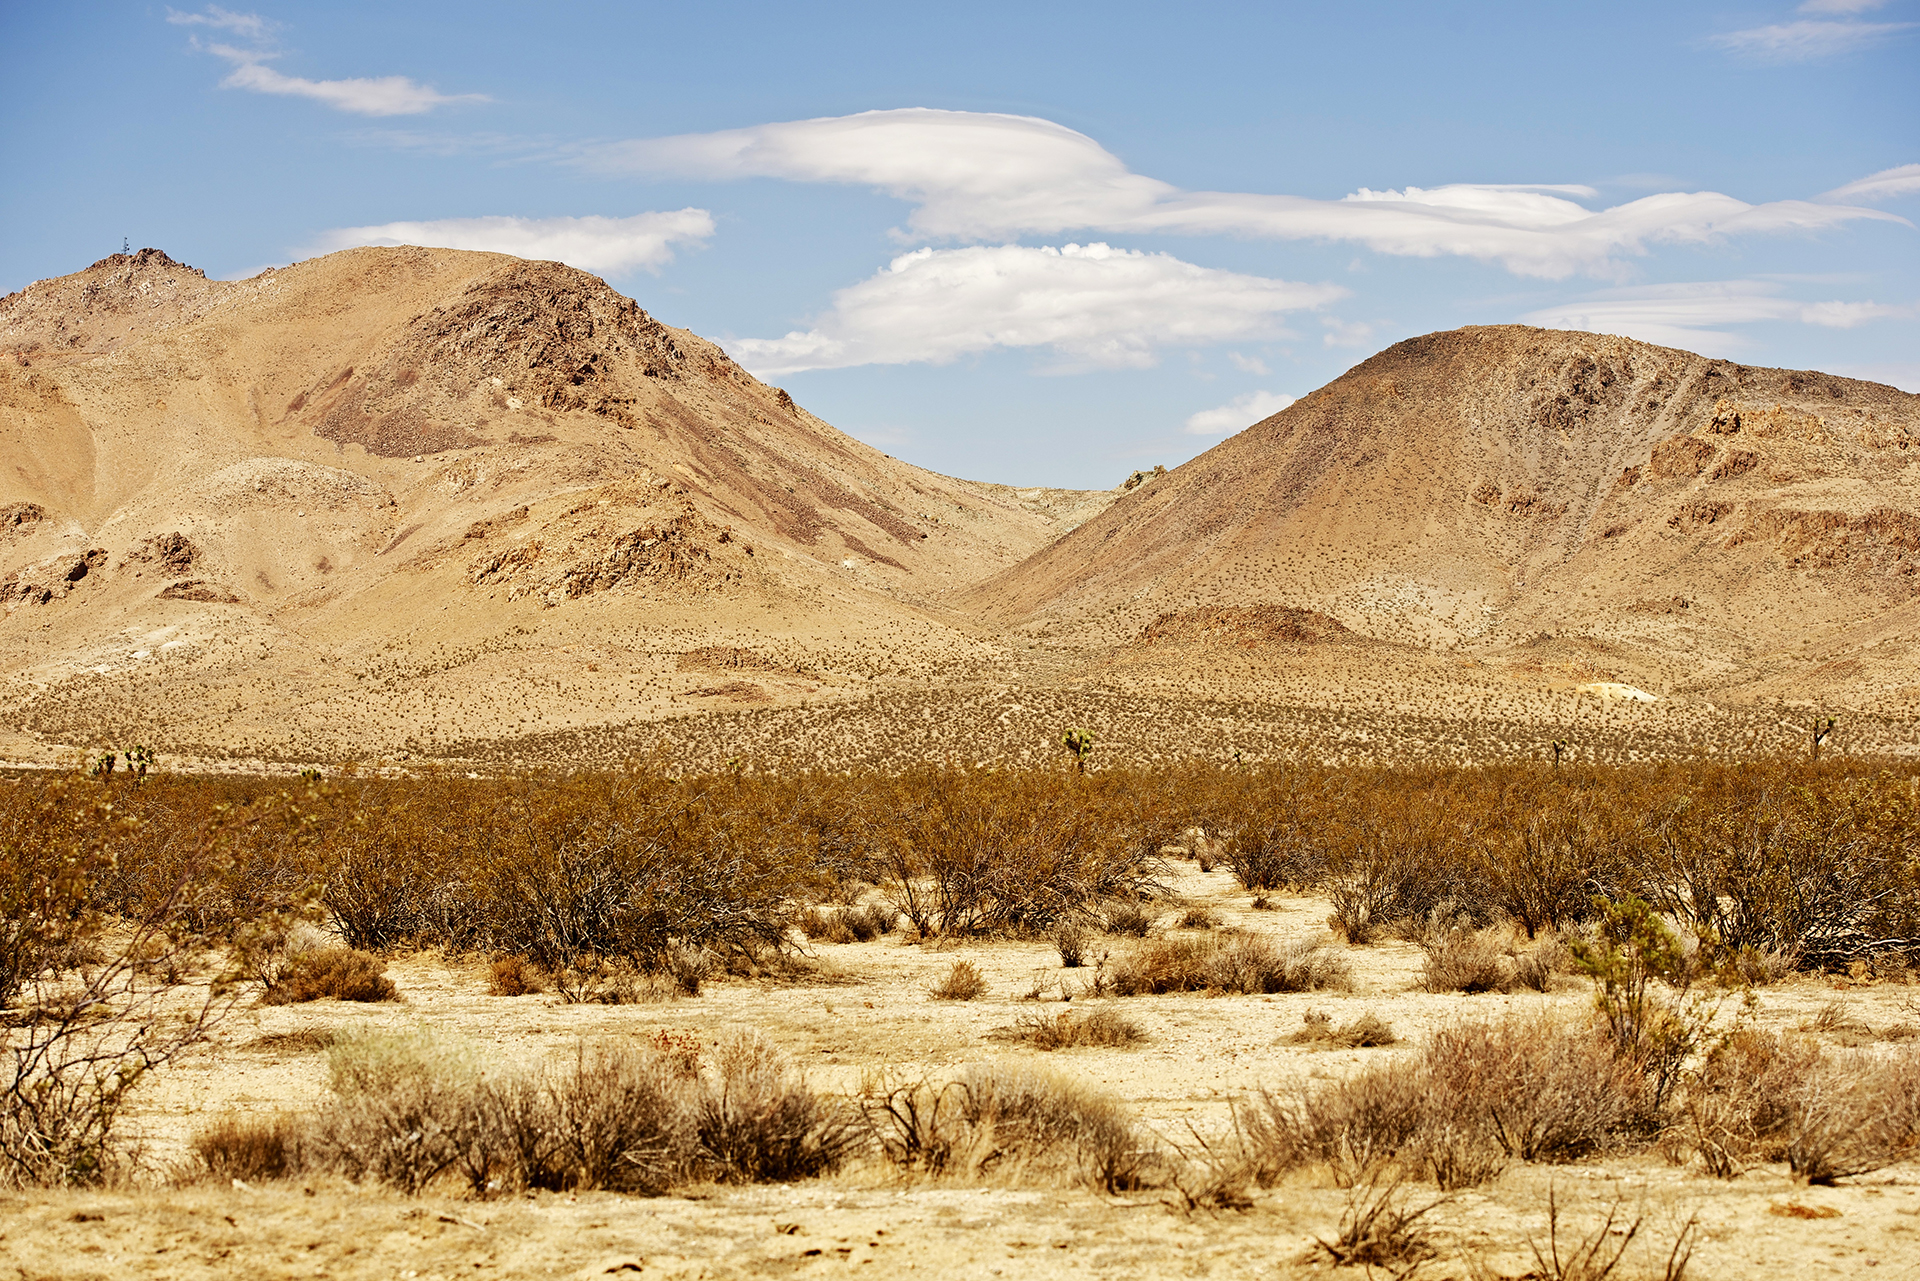 Where Can I park my RV in the Mojave Desert?